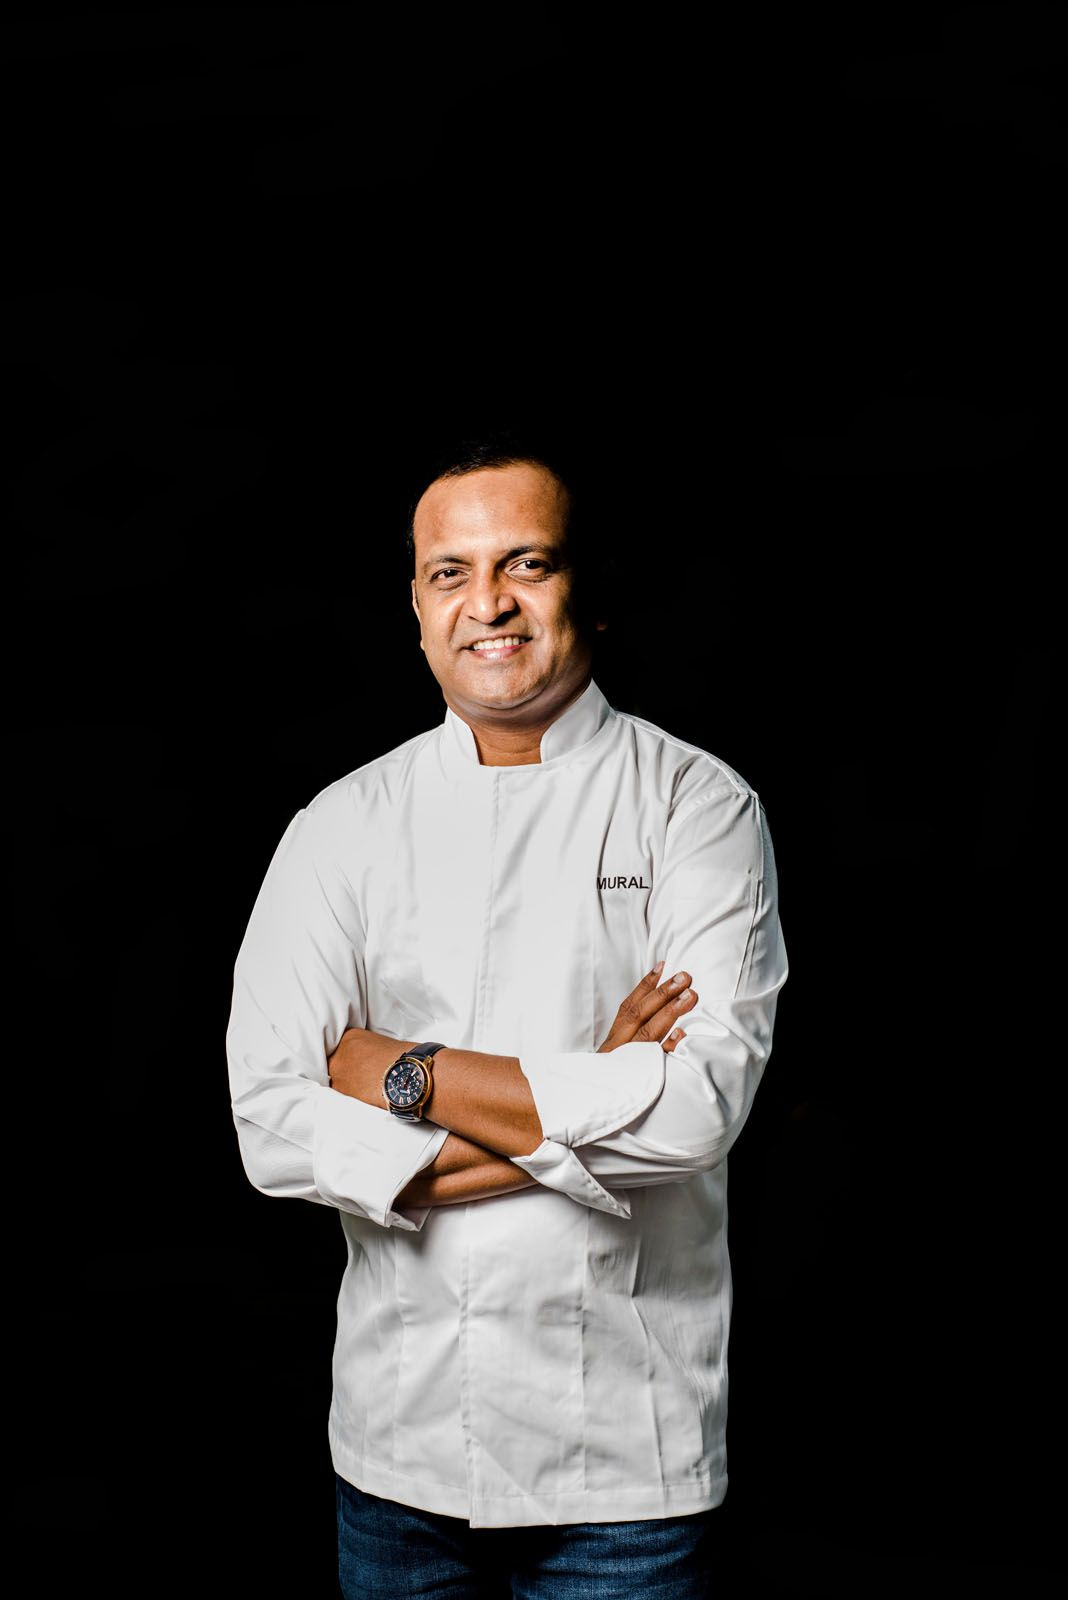 Former Song of India Chef Manjunath Mural Starts a New Chapter With His Restaurant, Adda